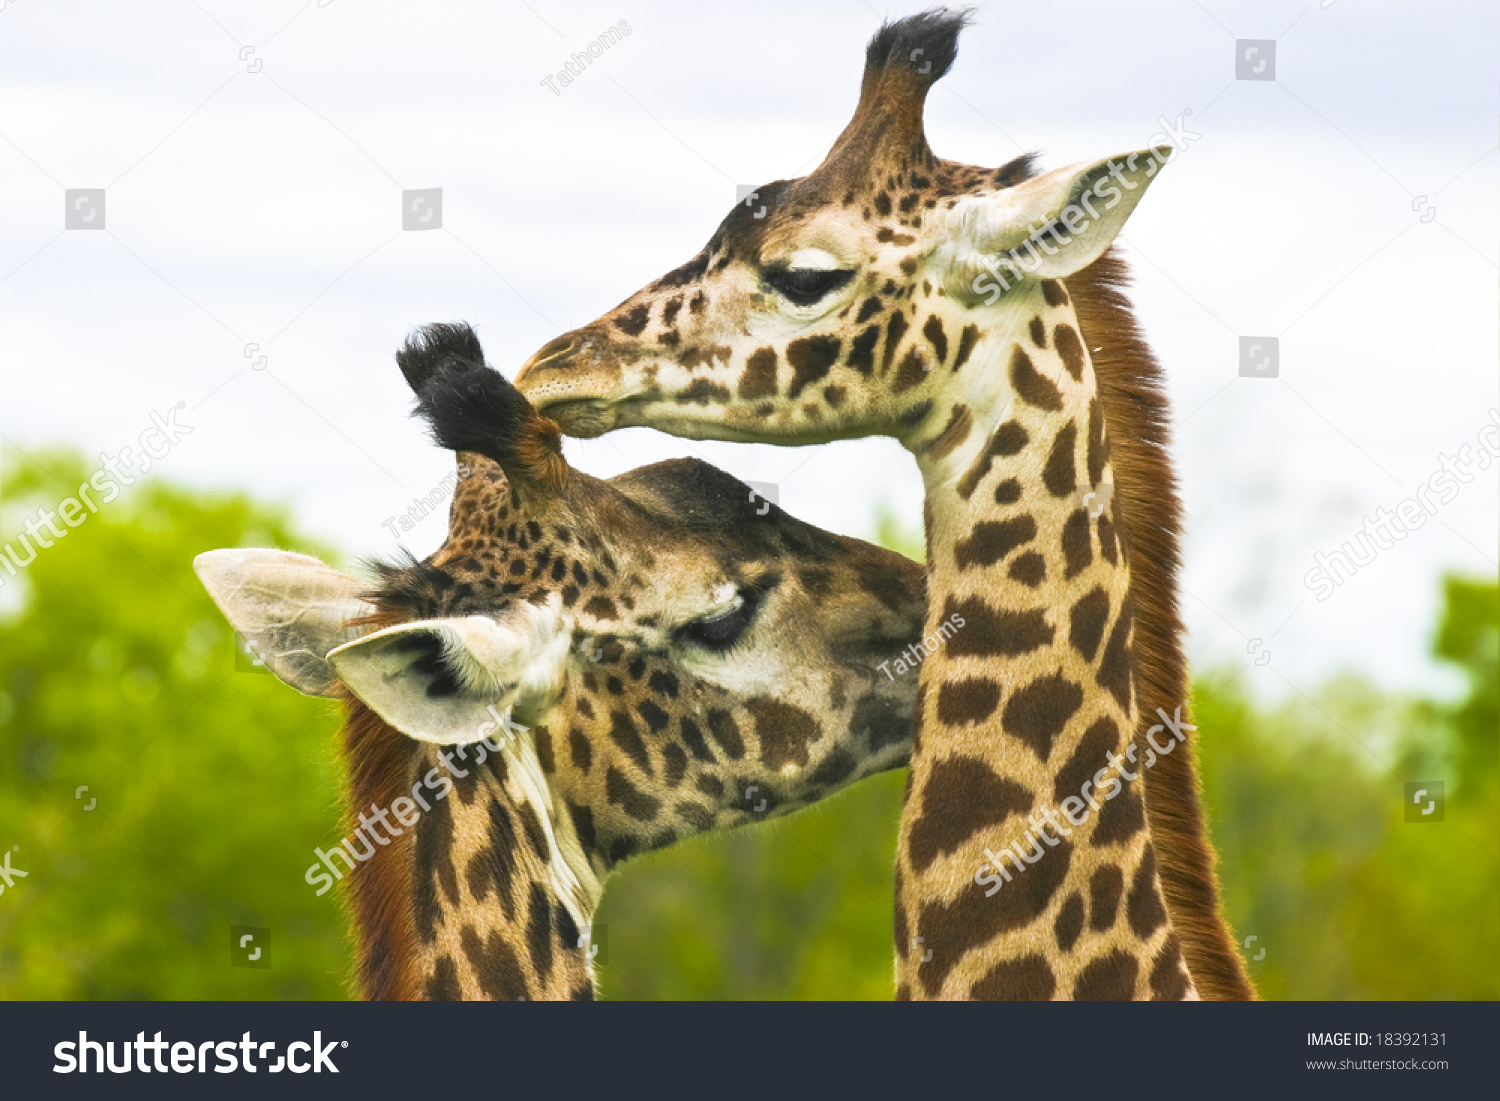 Giraffe mother with child